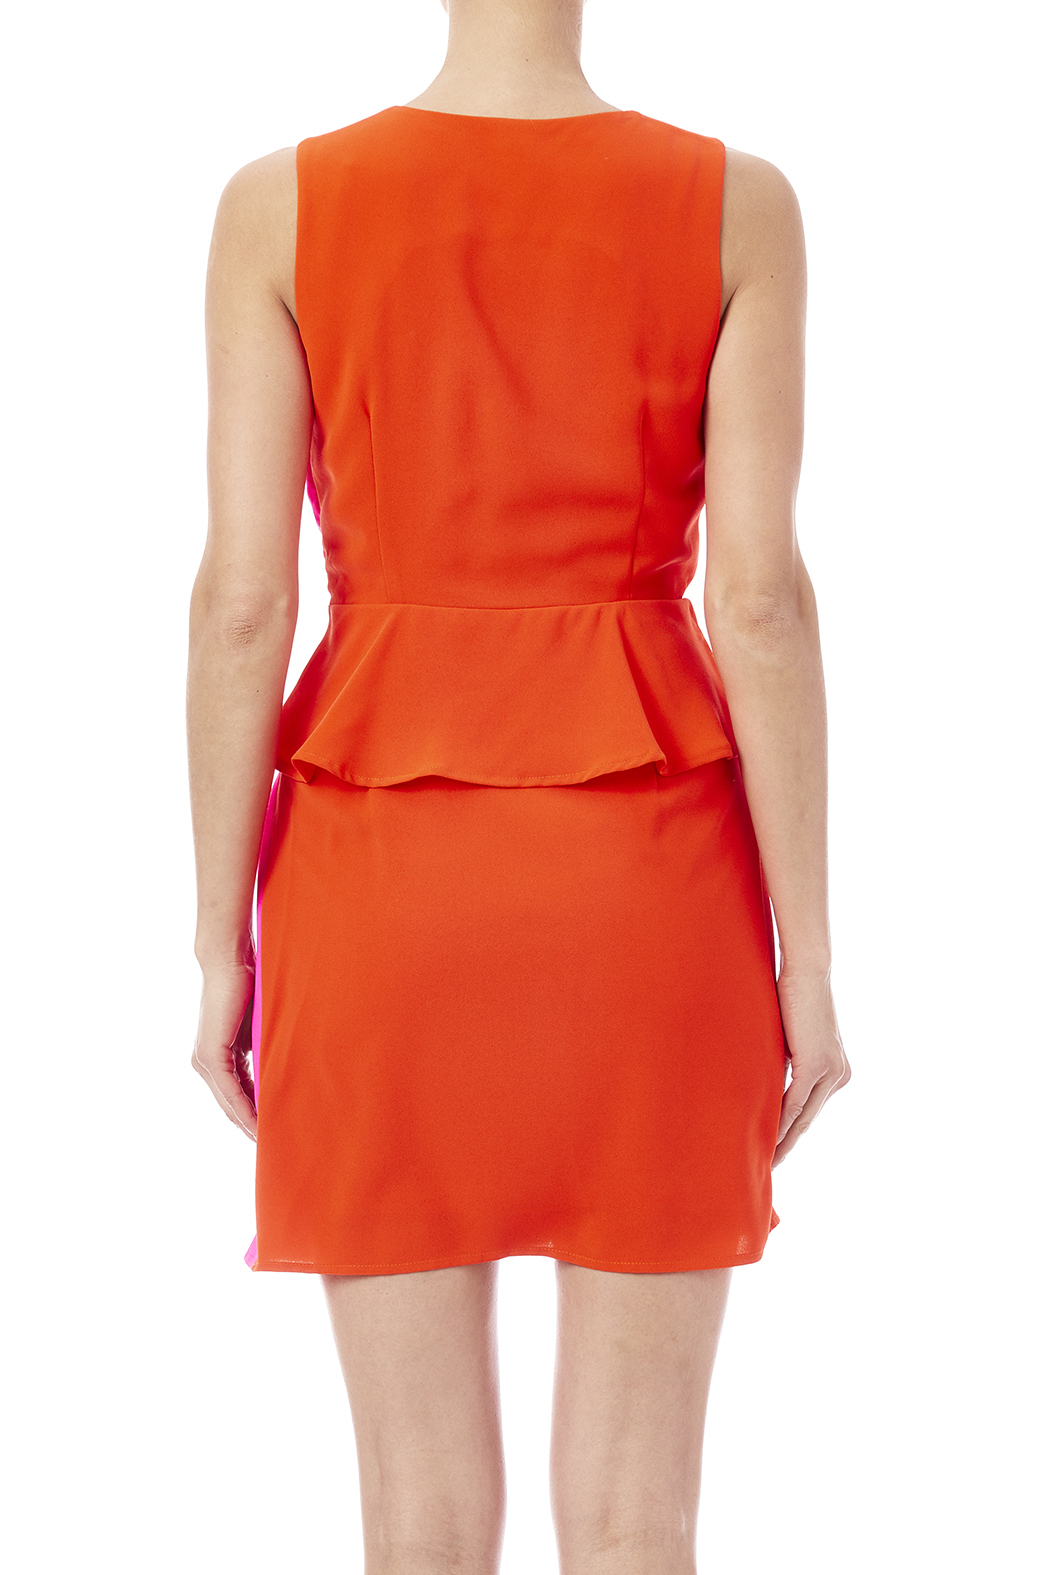 C. Luce Colorblock Peplum Dress - Back Cropped Image